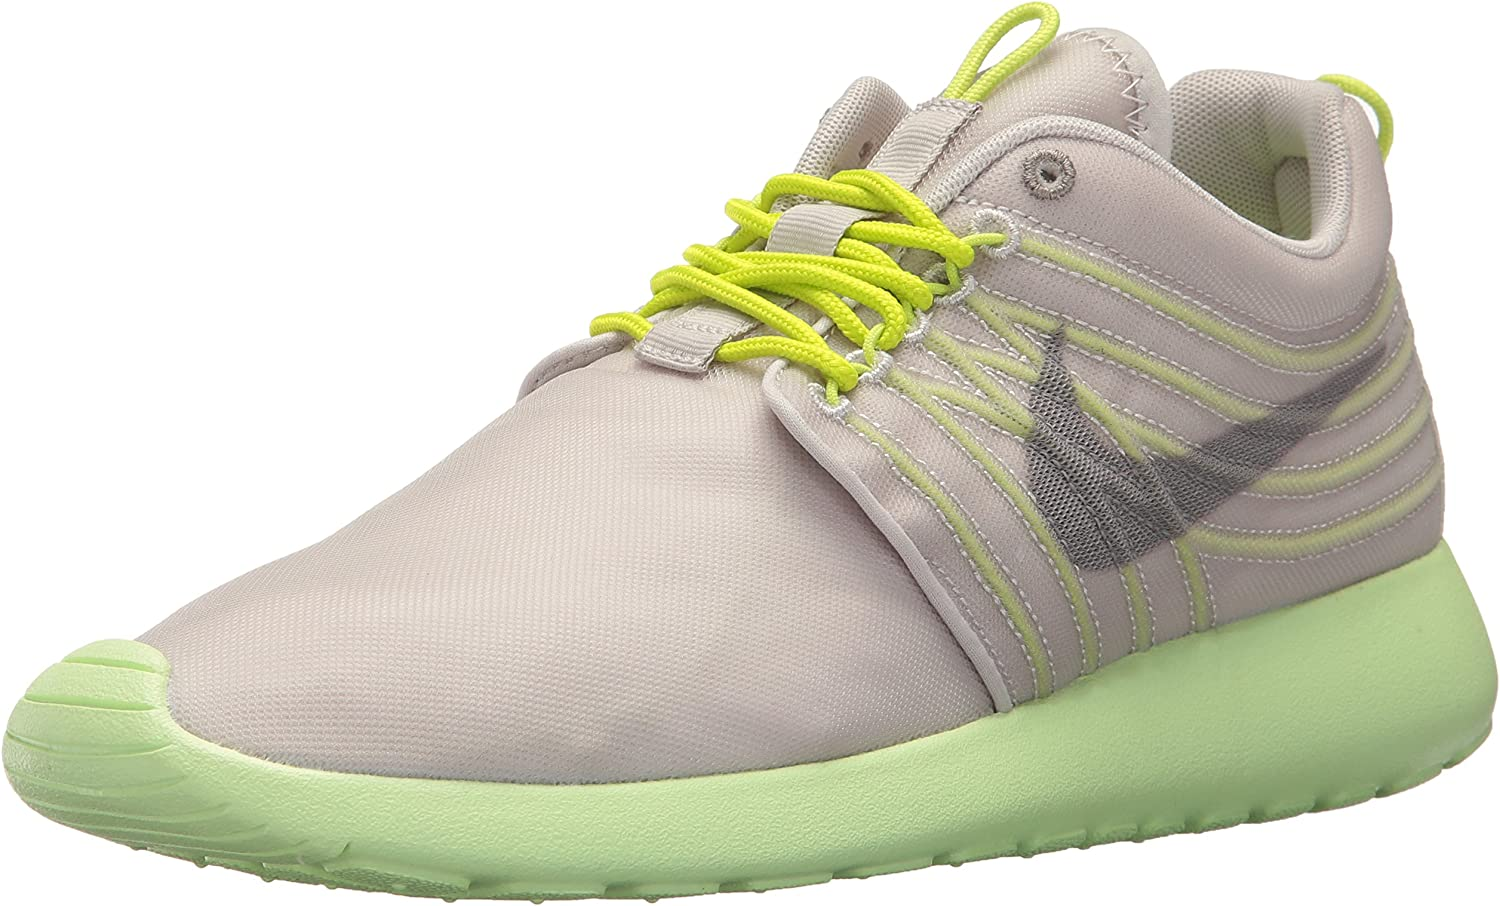 NIKE Roshe Dynamic Flywire Color Gamma Grey Light Charcoal Cyber Barely Volt 580579-037